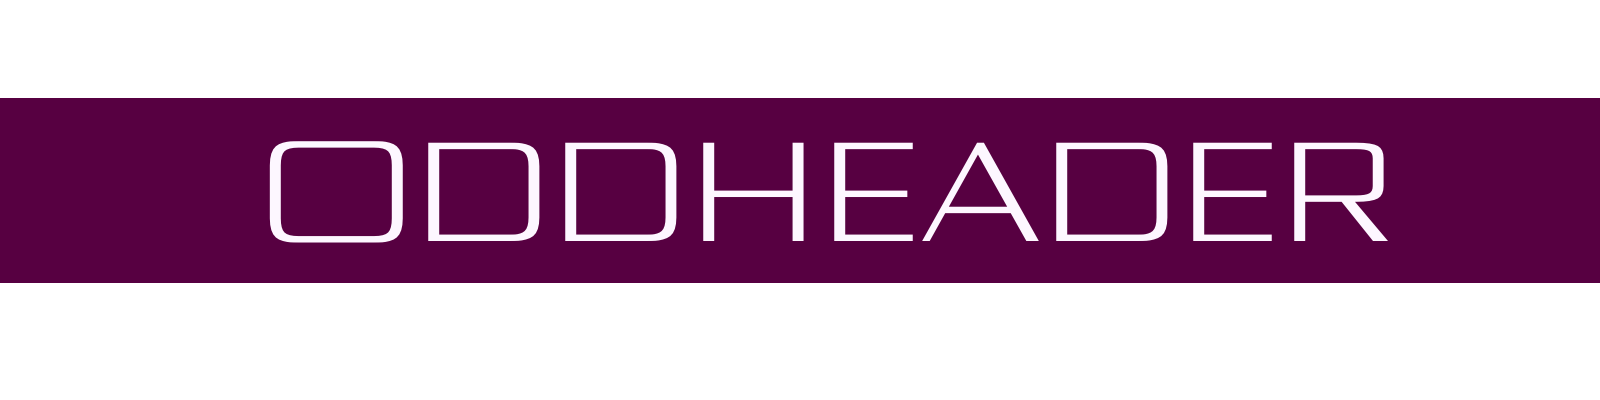 The official merch store for Oddheader!